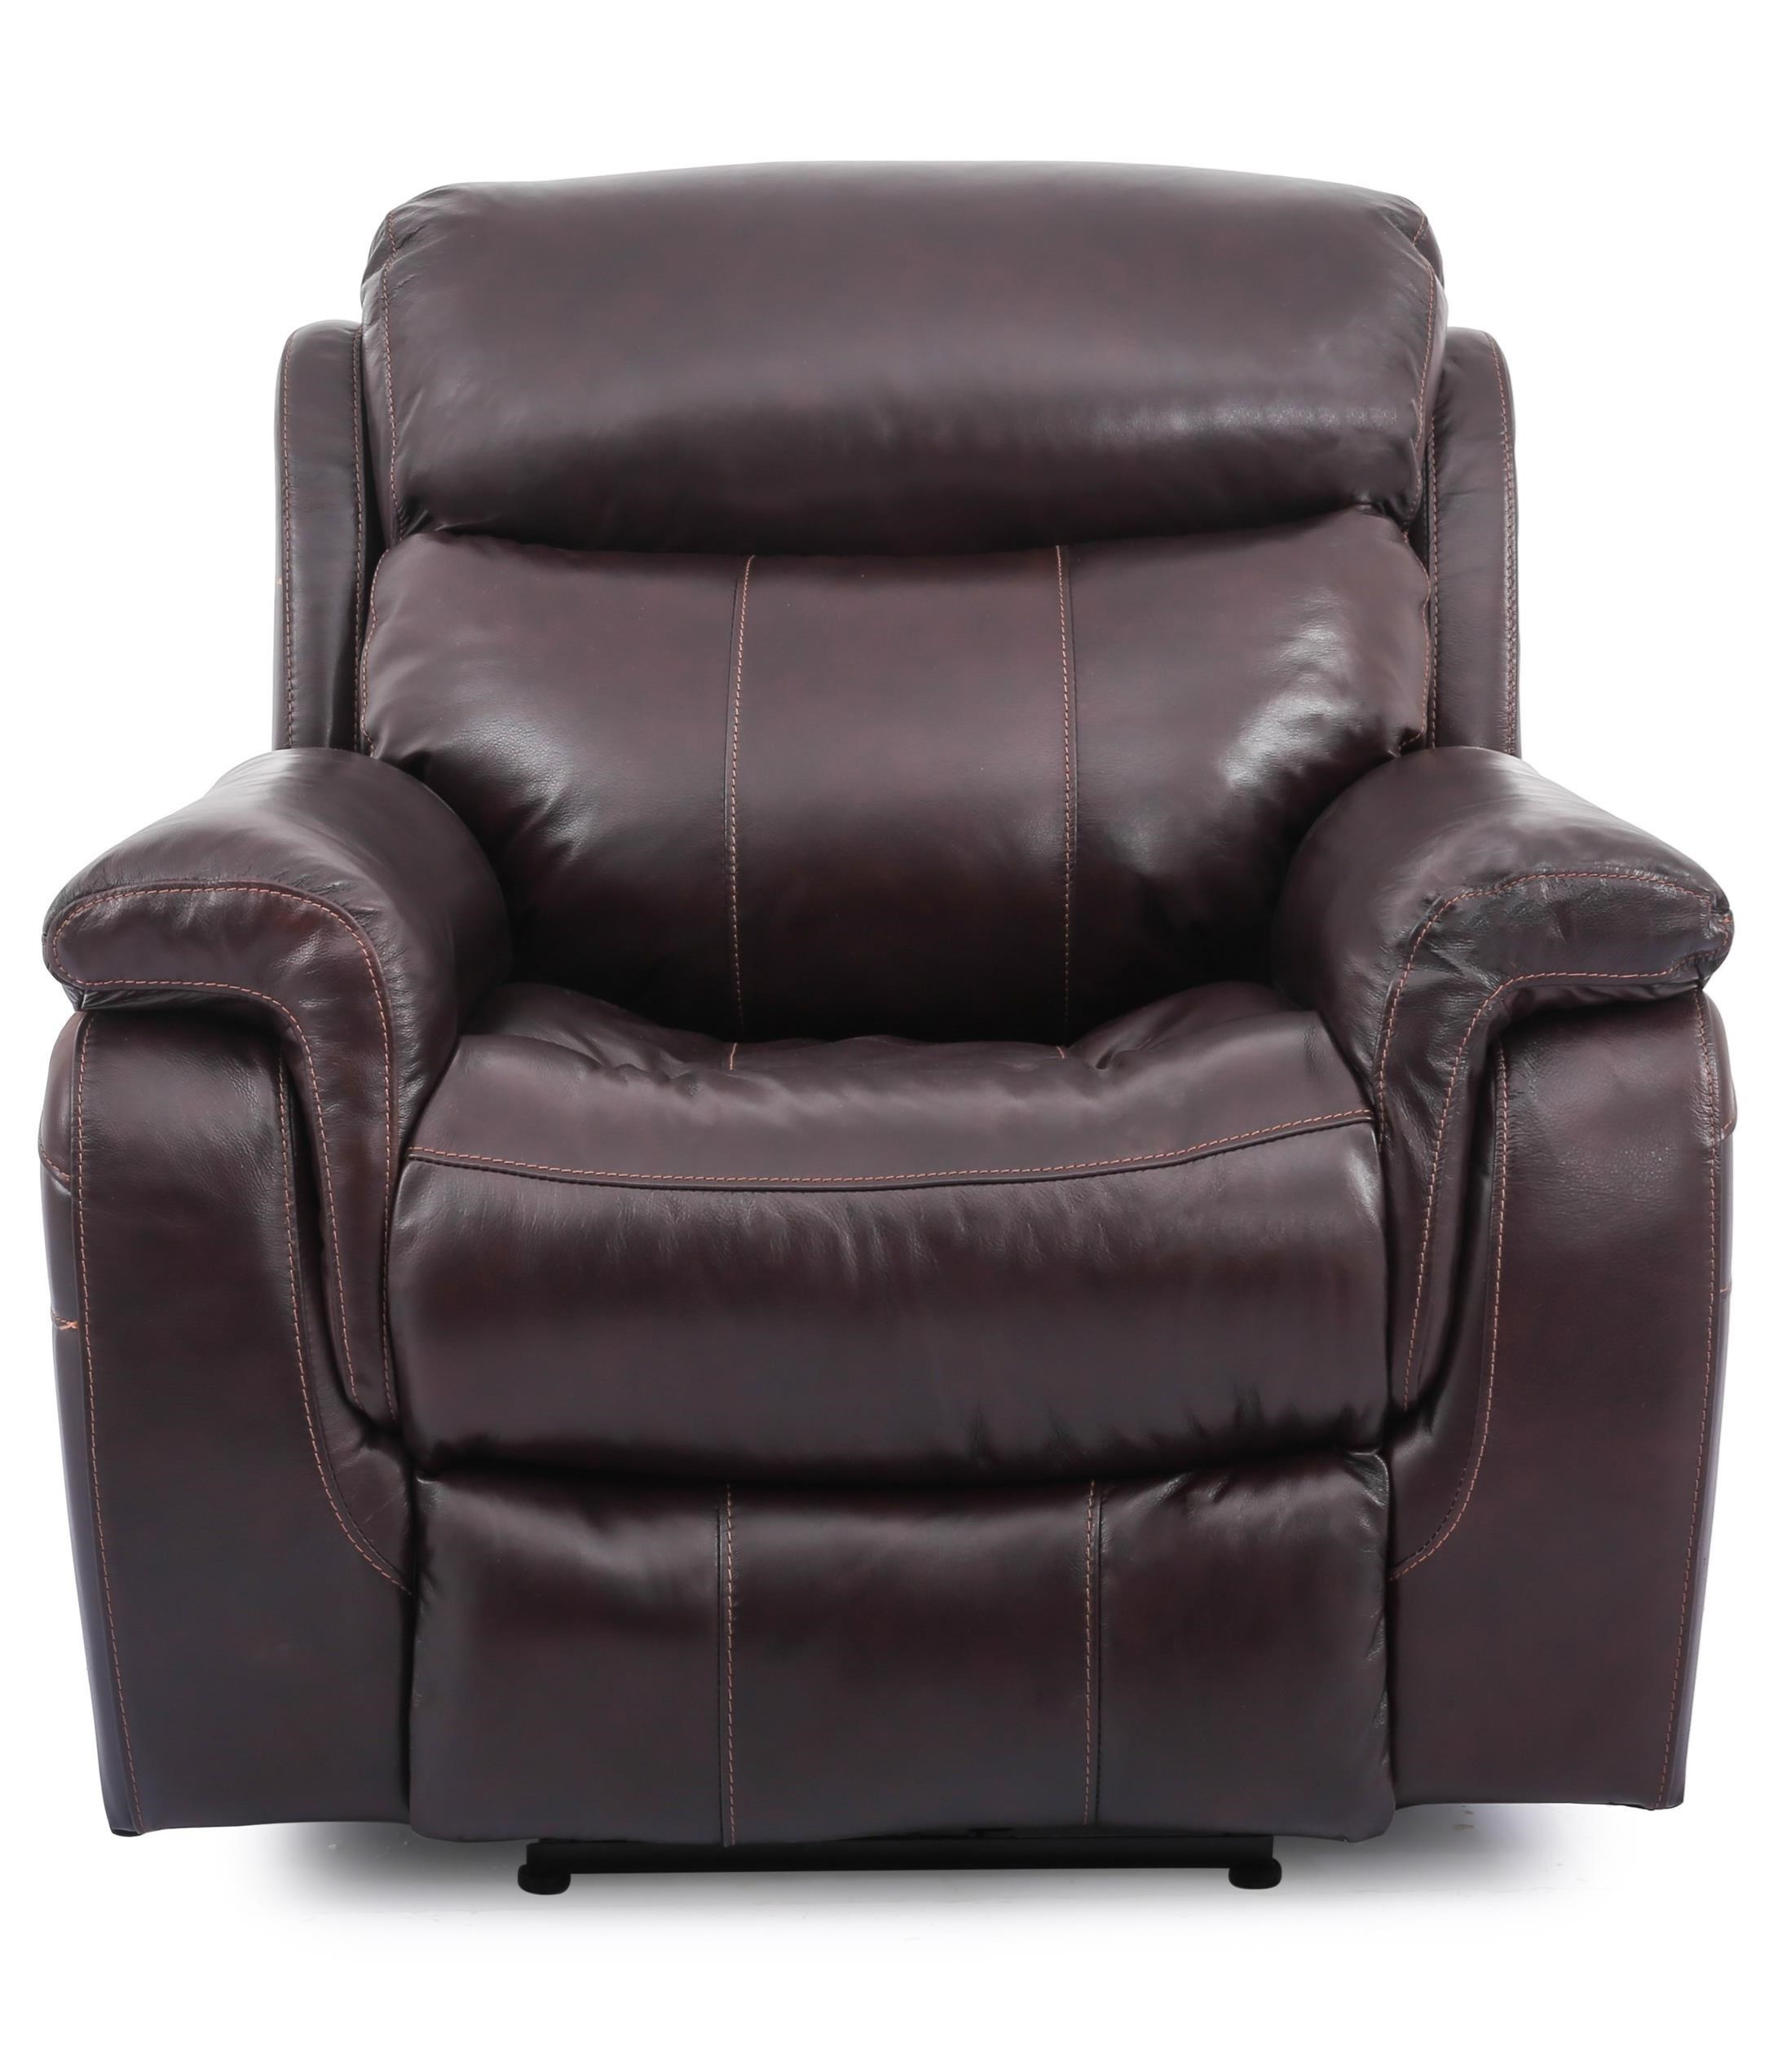 Superb Cheers Sofa 9020Power Recliner With Power Headrest